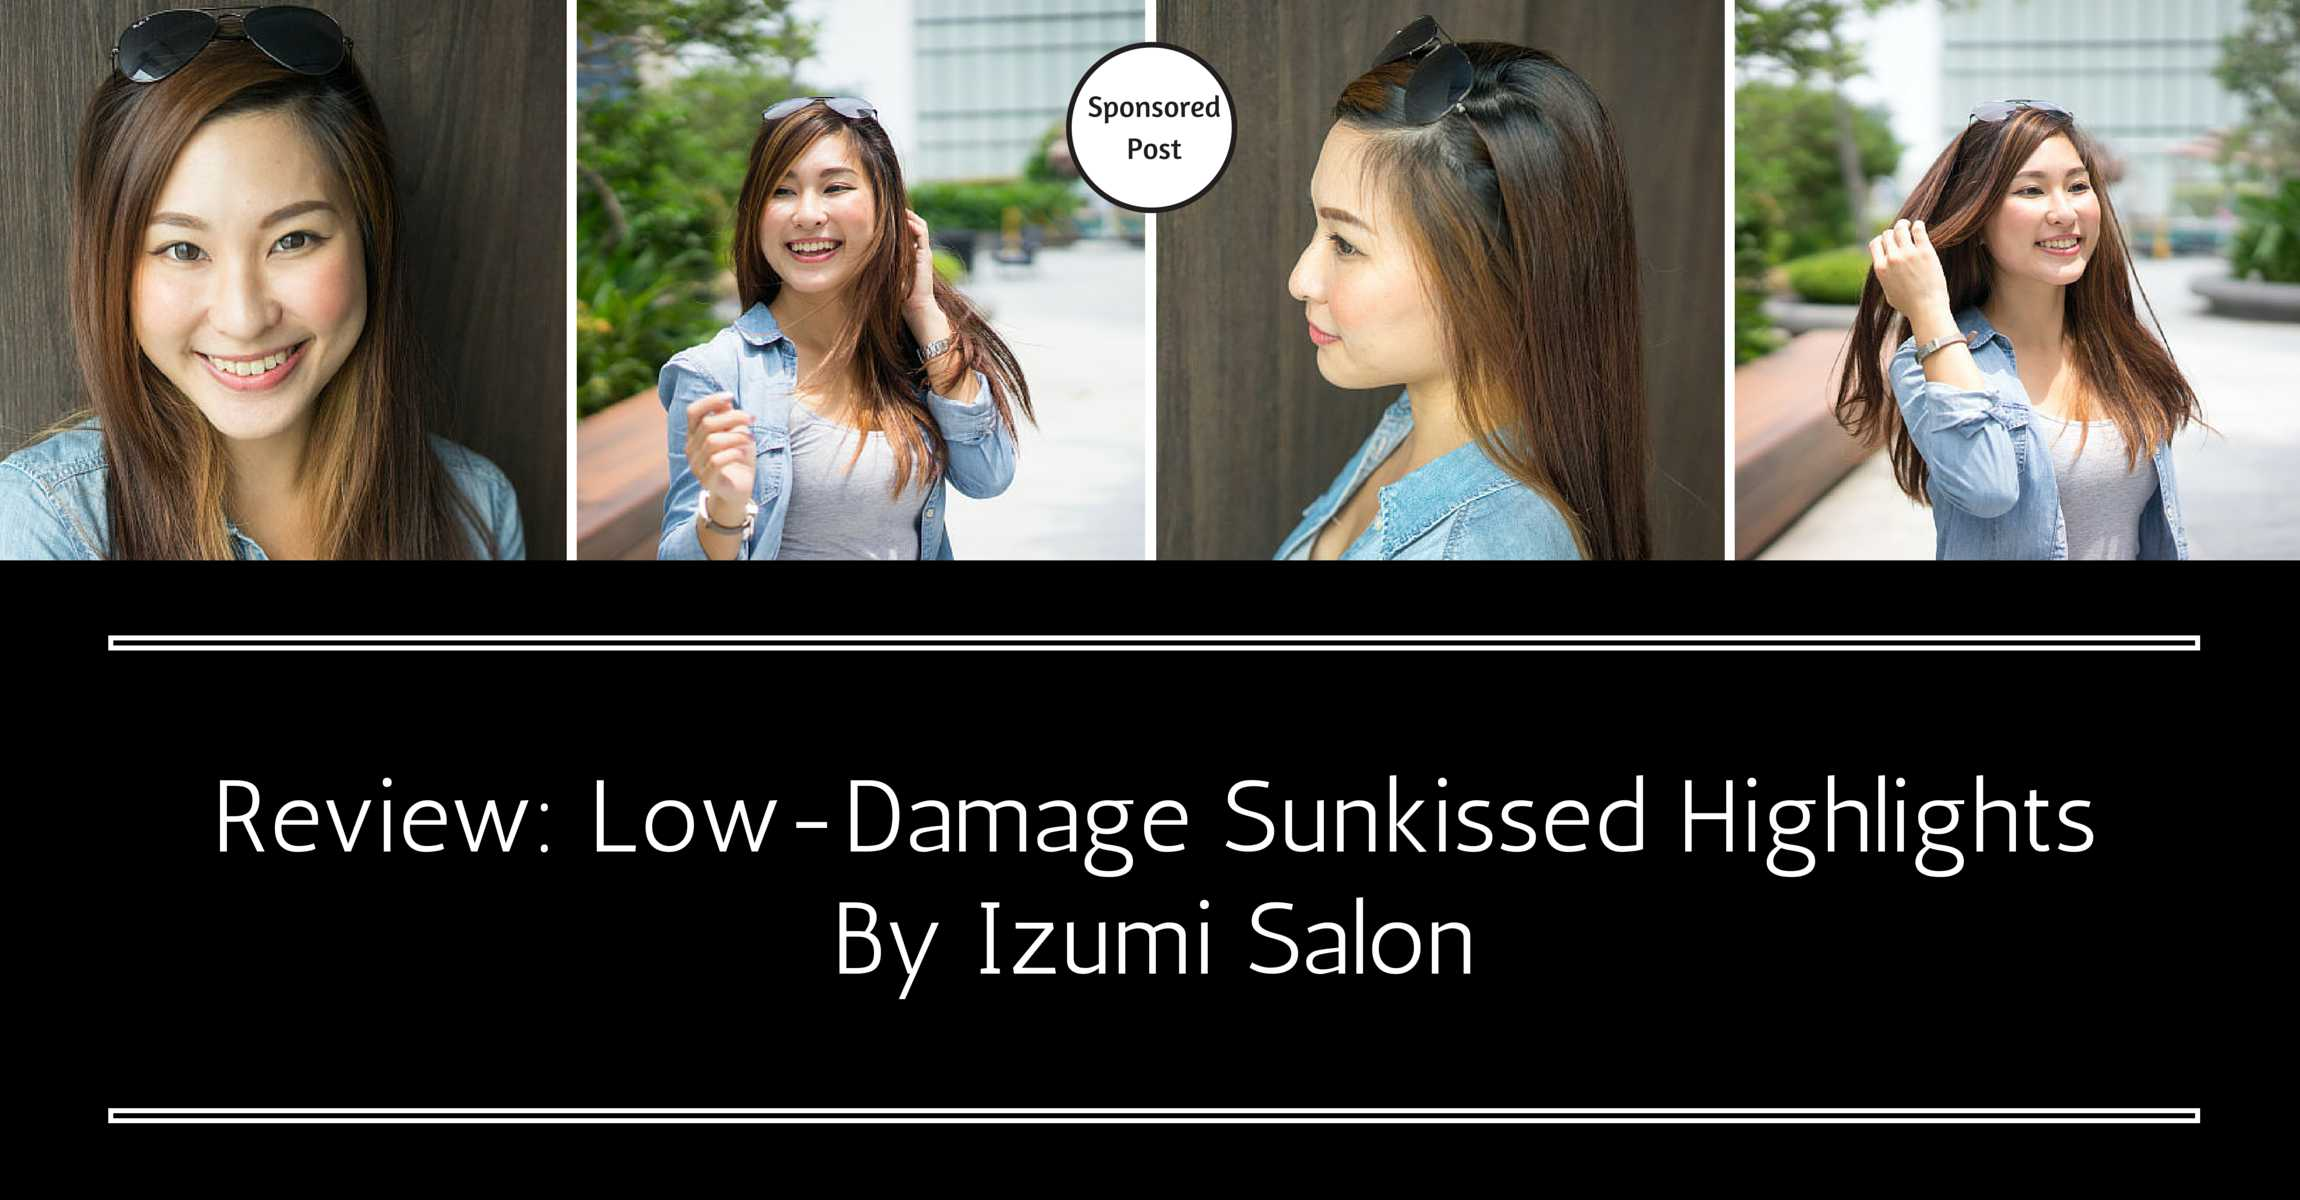 Complete Your Sporty Chic Look with Low-Damage Sunkissed Highlights by Izumi Salon